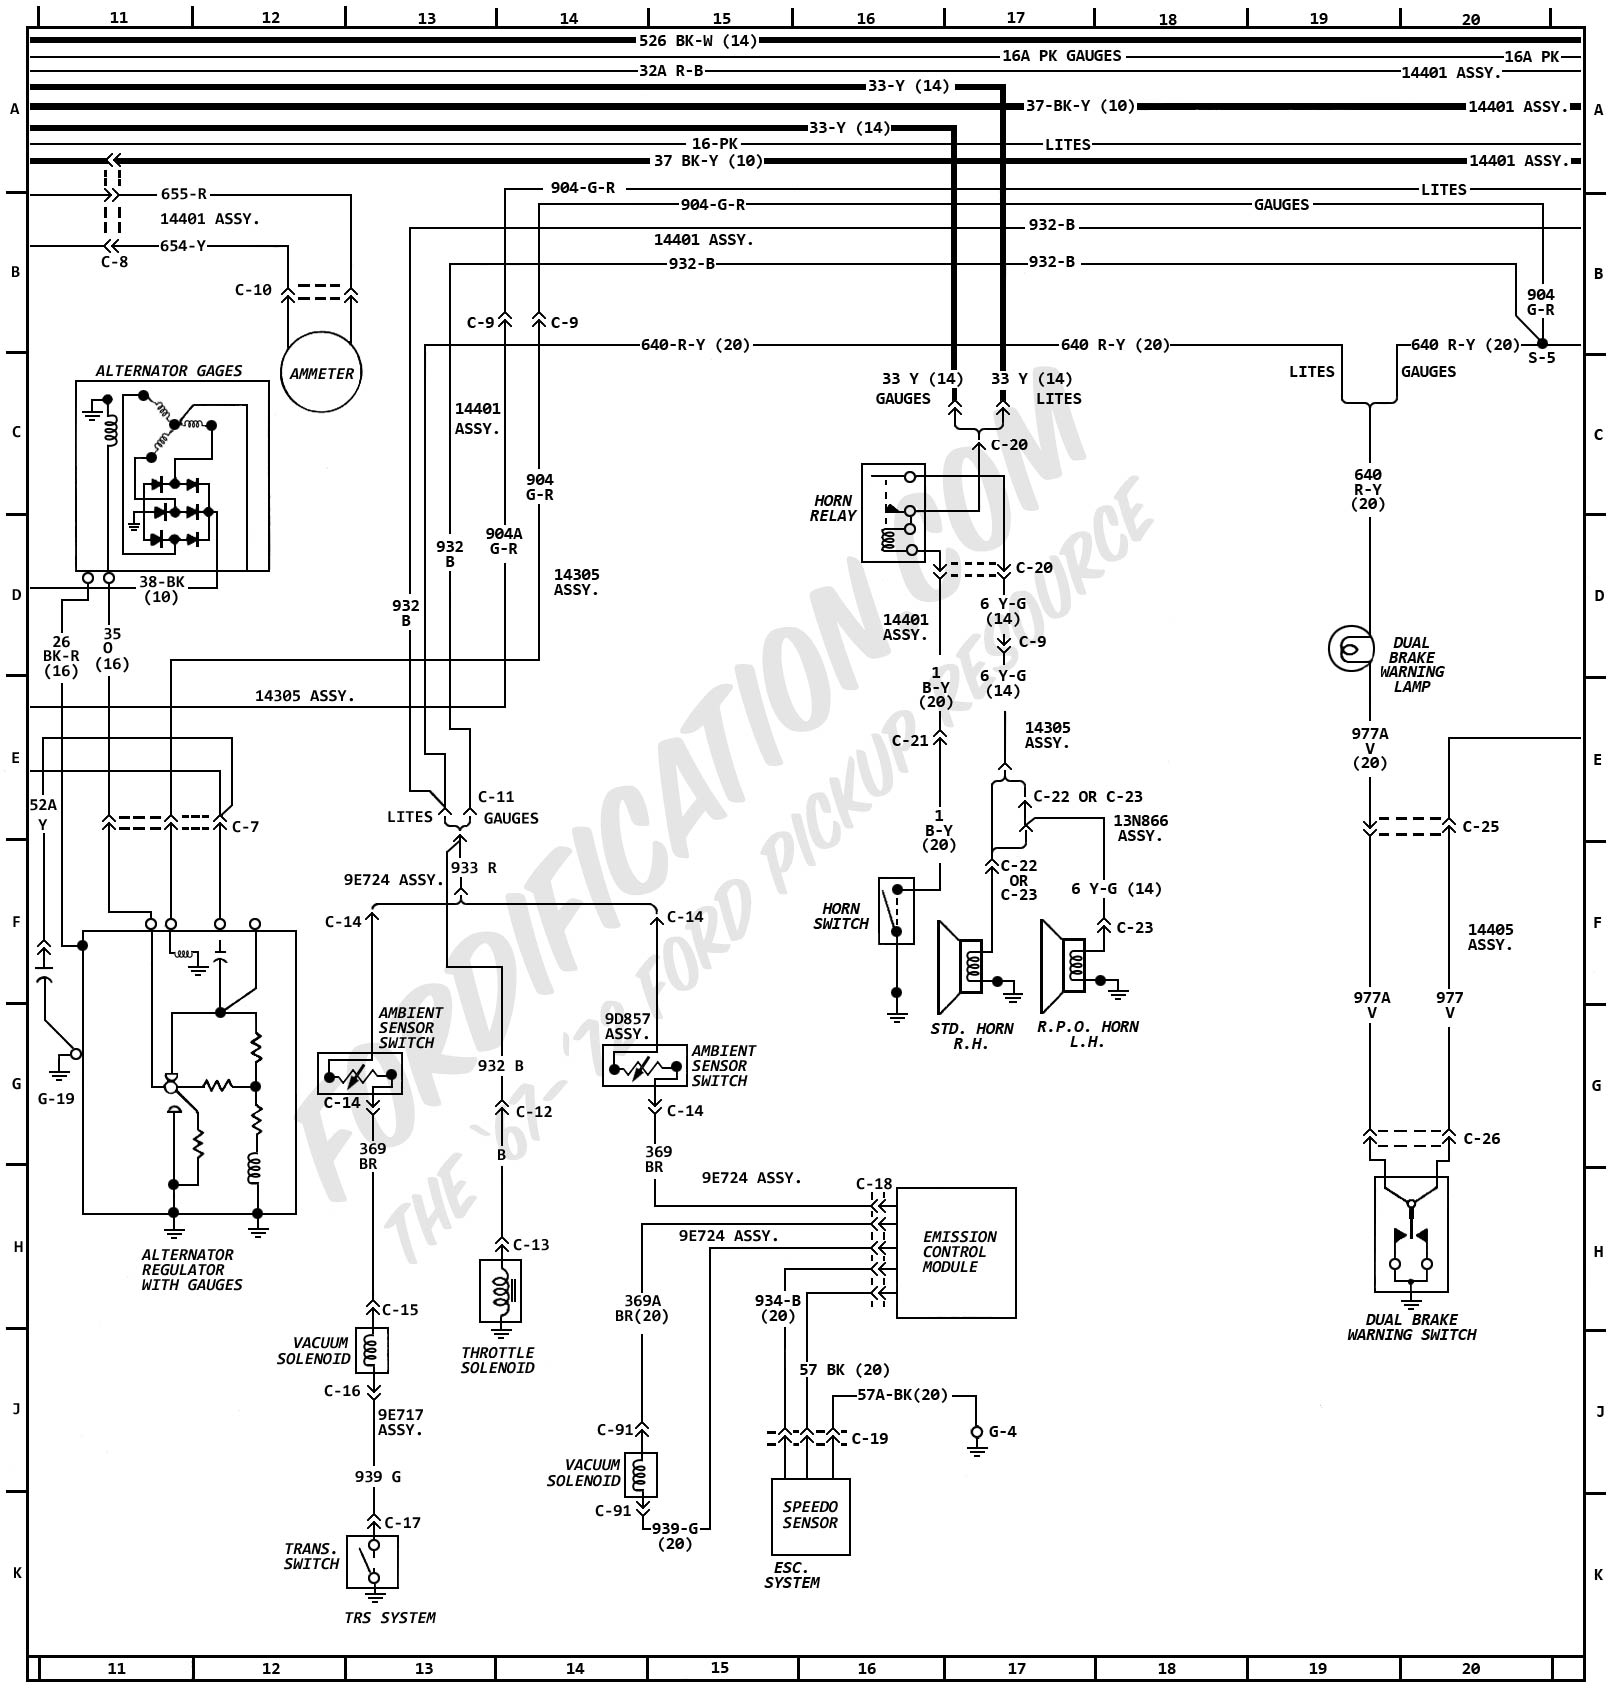 1972 ford truck wiring diagrams fordification com rh fordification com Ford F-250 Air Conditioner Wiring Harness Diagram Ford F-250 Air Conditioner Wiring Harness Diagram